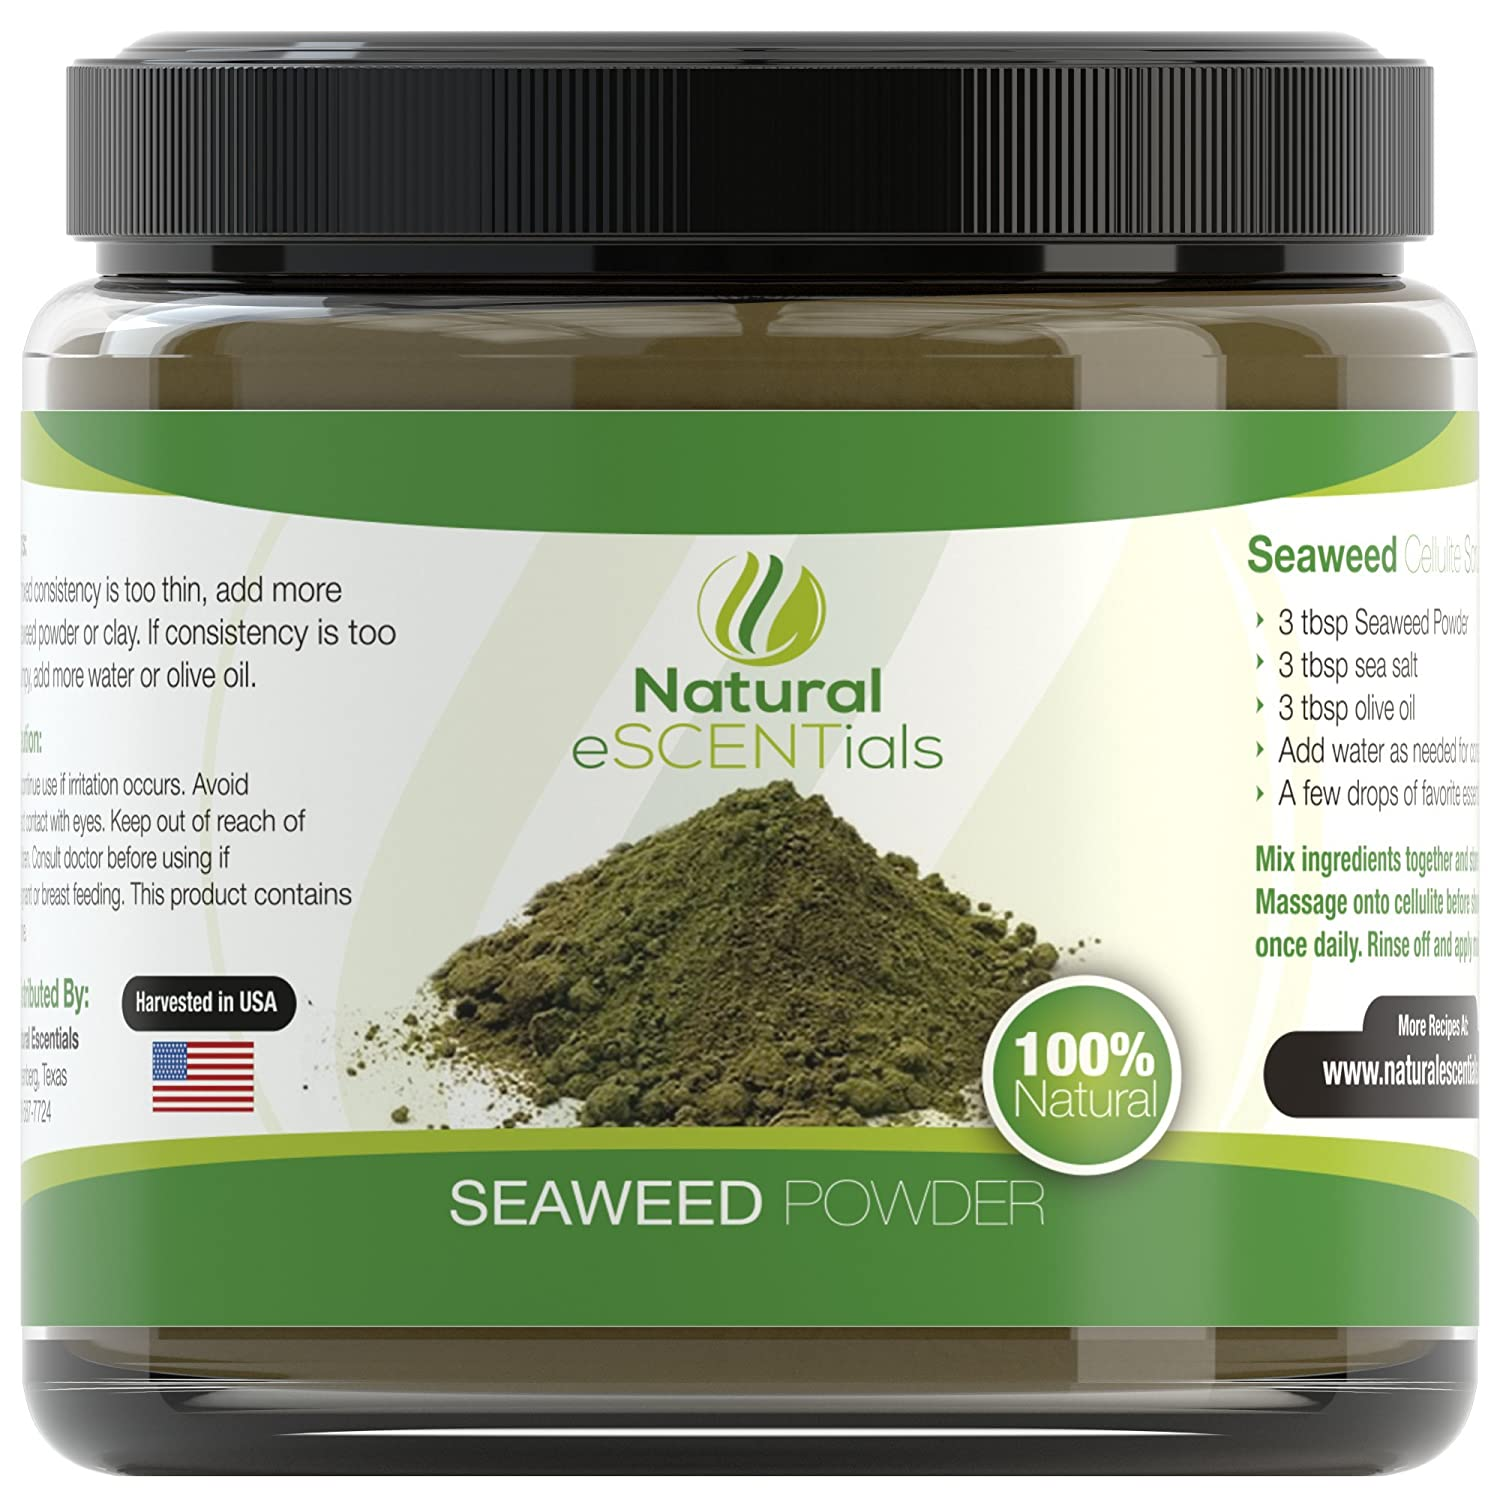 Seaweed Powder - HIGH QUALITY Organic Kelp Powder ? Best Cellulite Treatment ? - Fresh Norwegian Ascophyllum Nodosum Harvested in USA from the Atlantic Ocean - Ideal For Spa Quality Scrubs, Wraps, and Masks - HUGE 16oz Jar - Kosher Certified